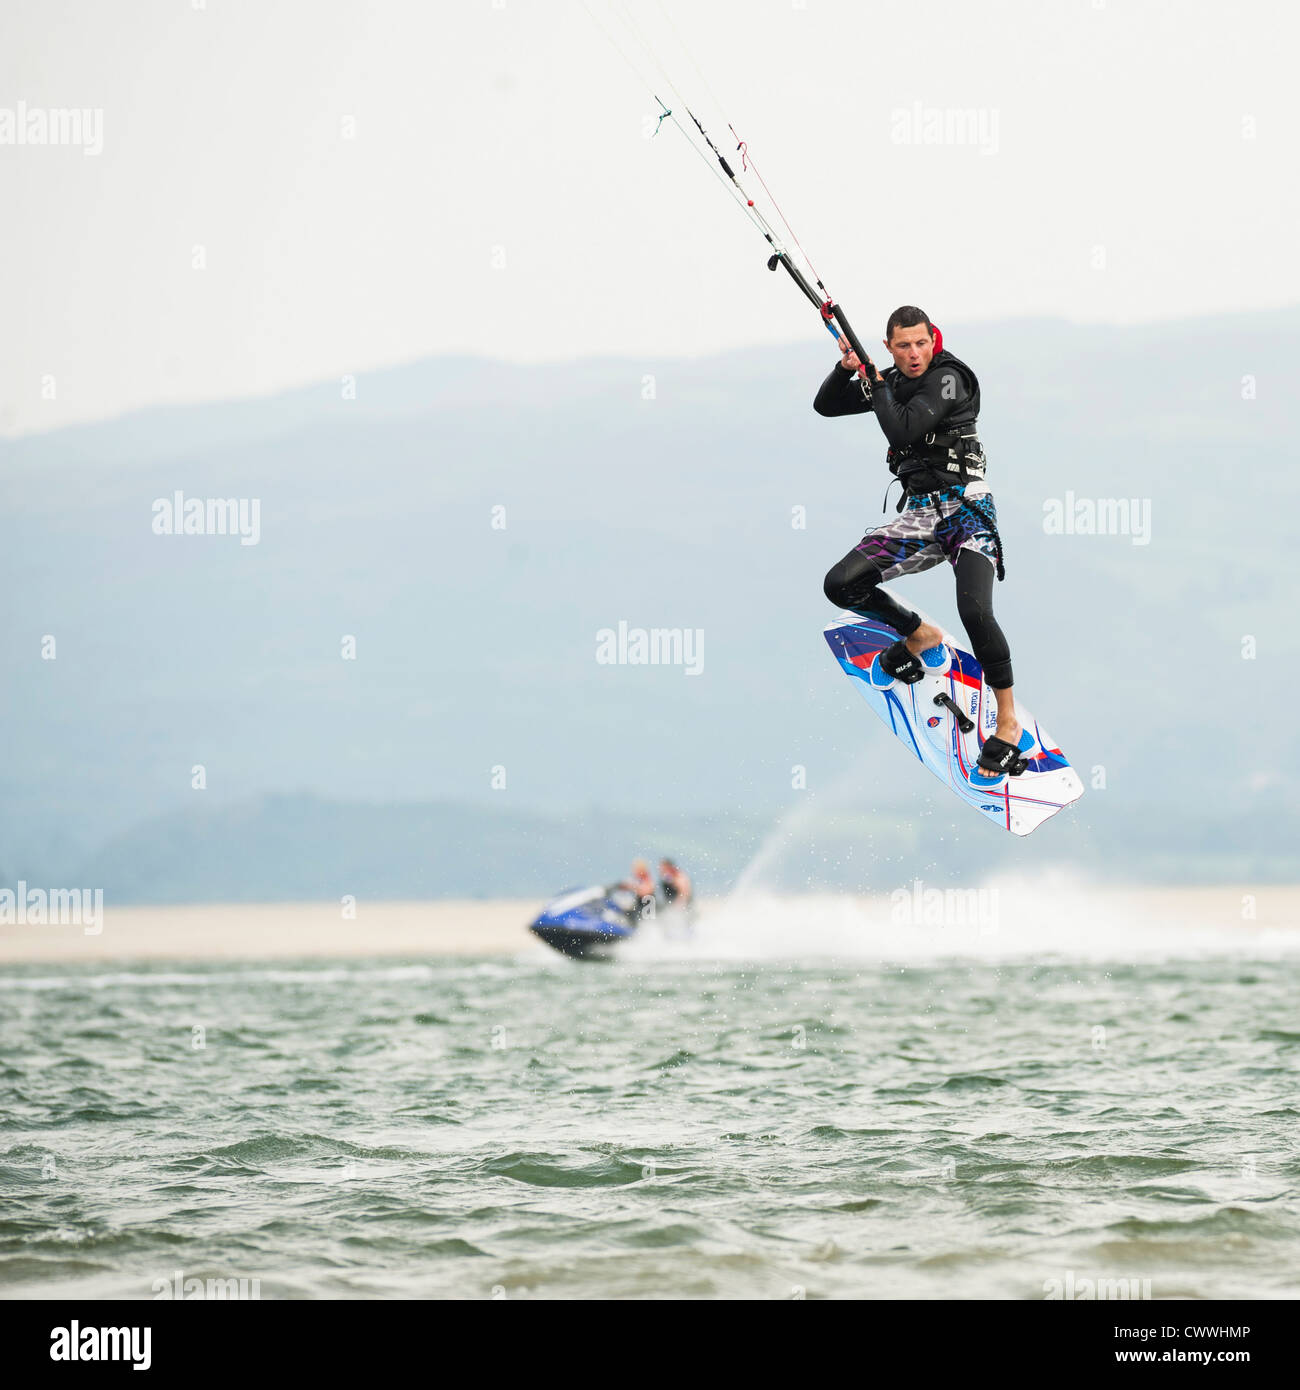 Extreme watersports: a man kite surfing on the water on a August afternoon, Ynys las beach, Dyfi estuary, West wales - Stock Image